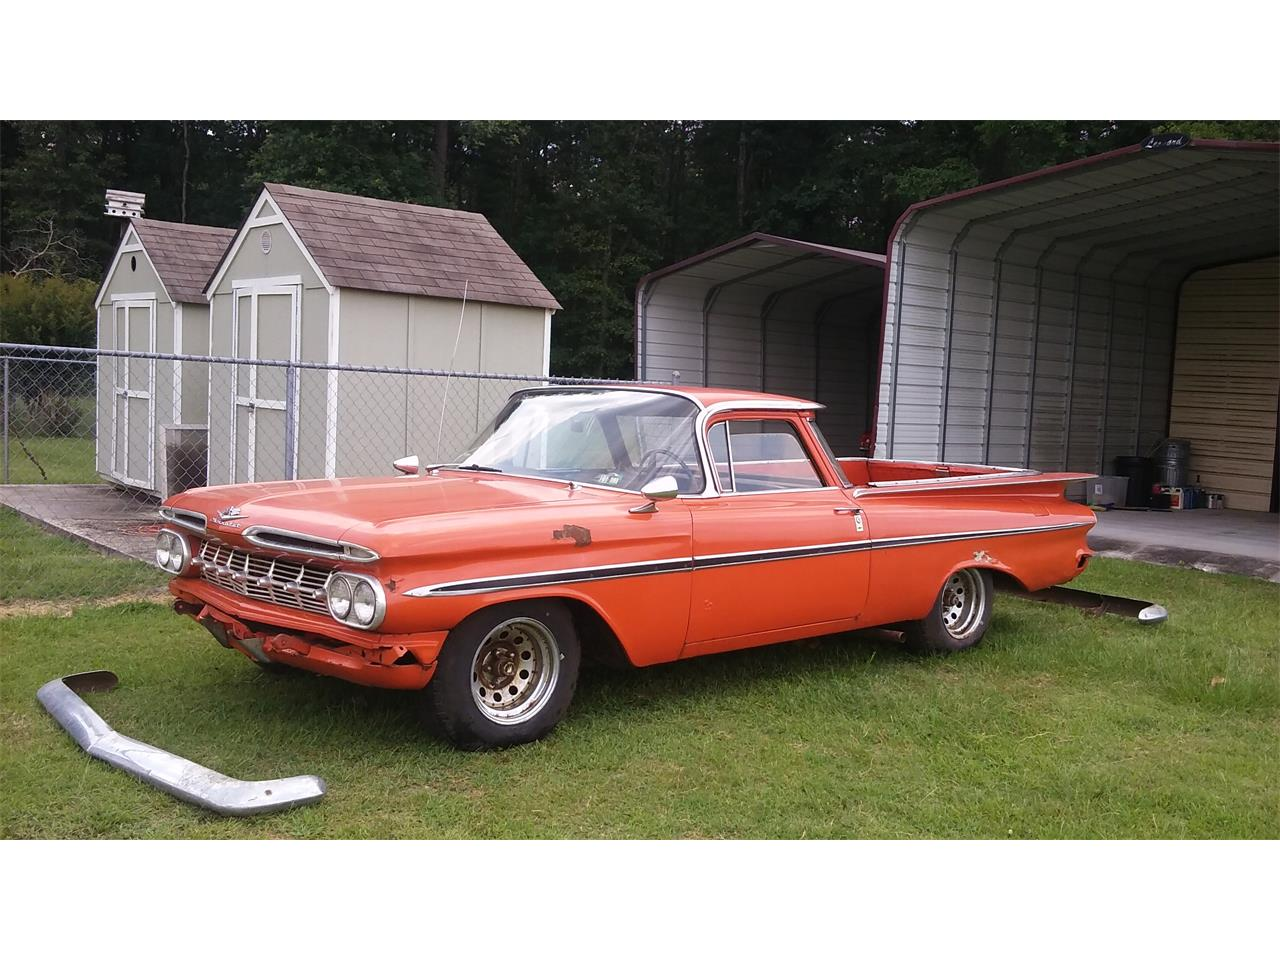 Large Picture of Classic '59 El Camino located in Darlington South Carolina - $9,500.00 Offered by a Private Seller - IWY1